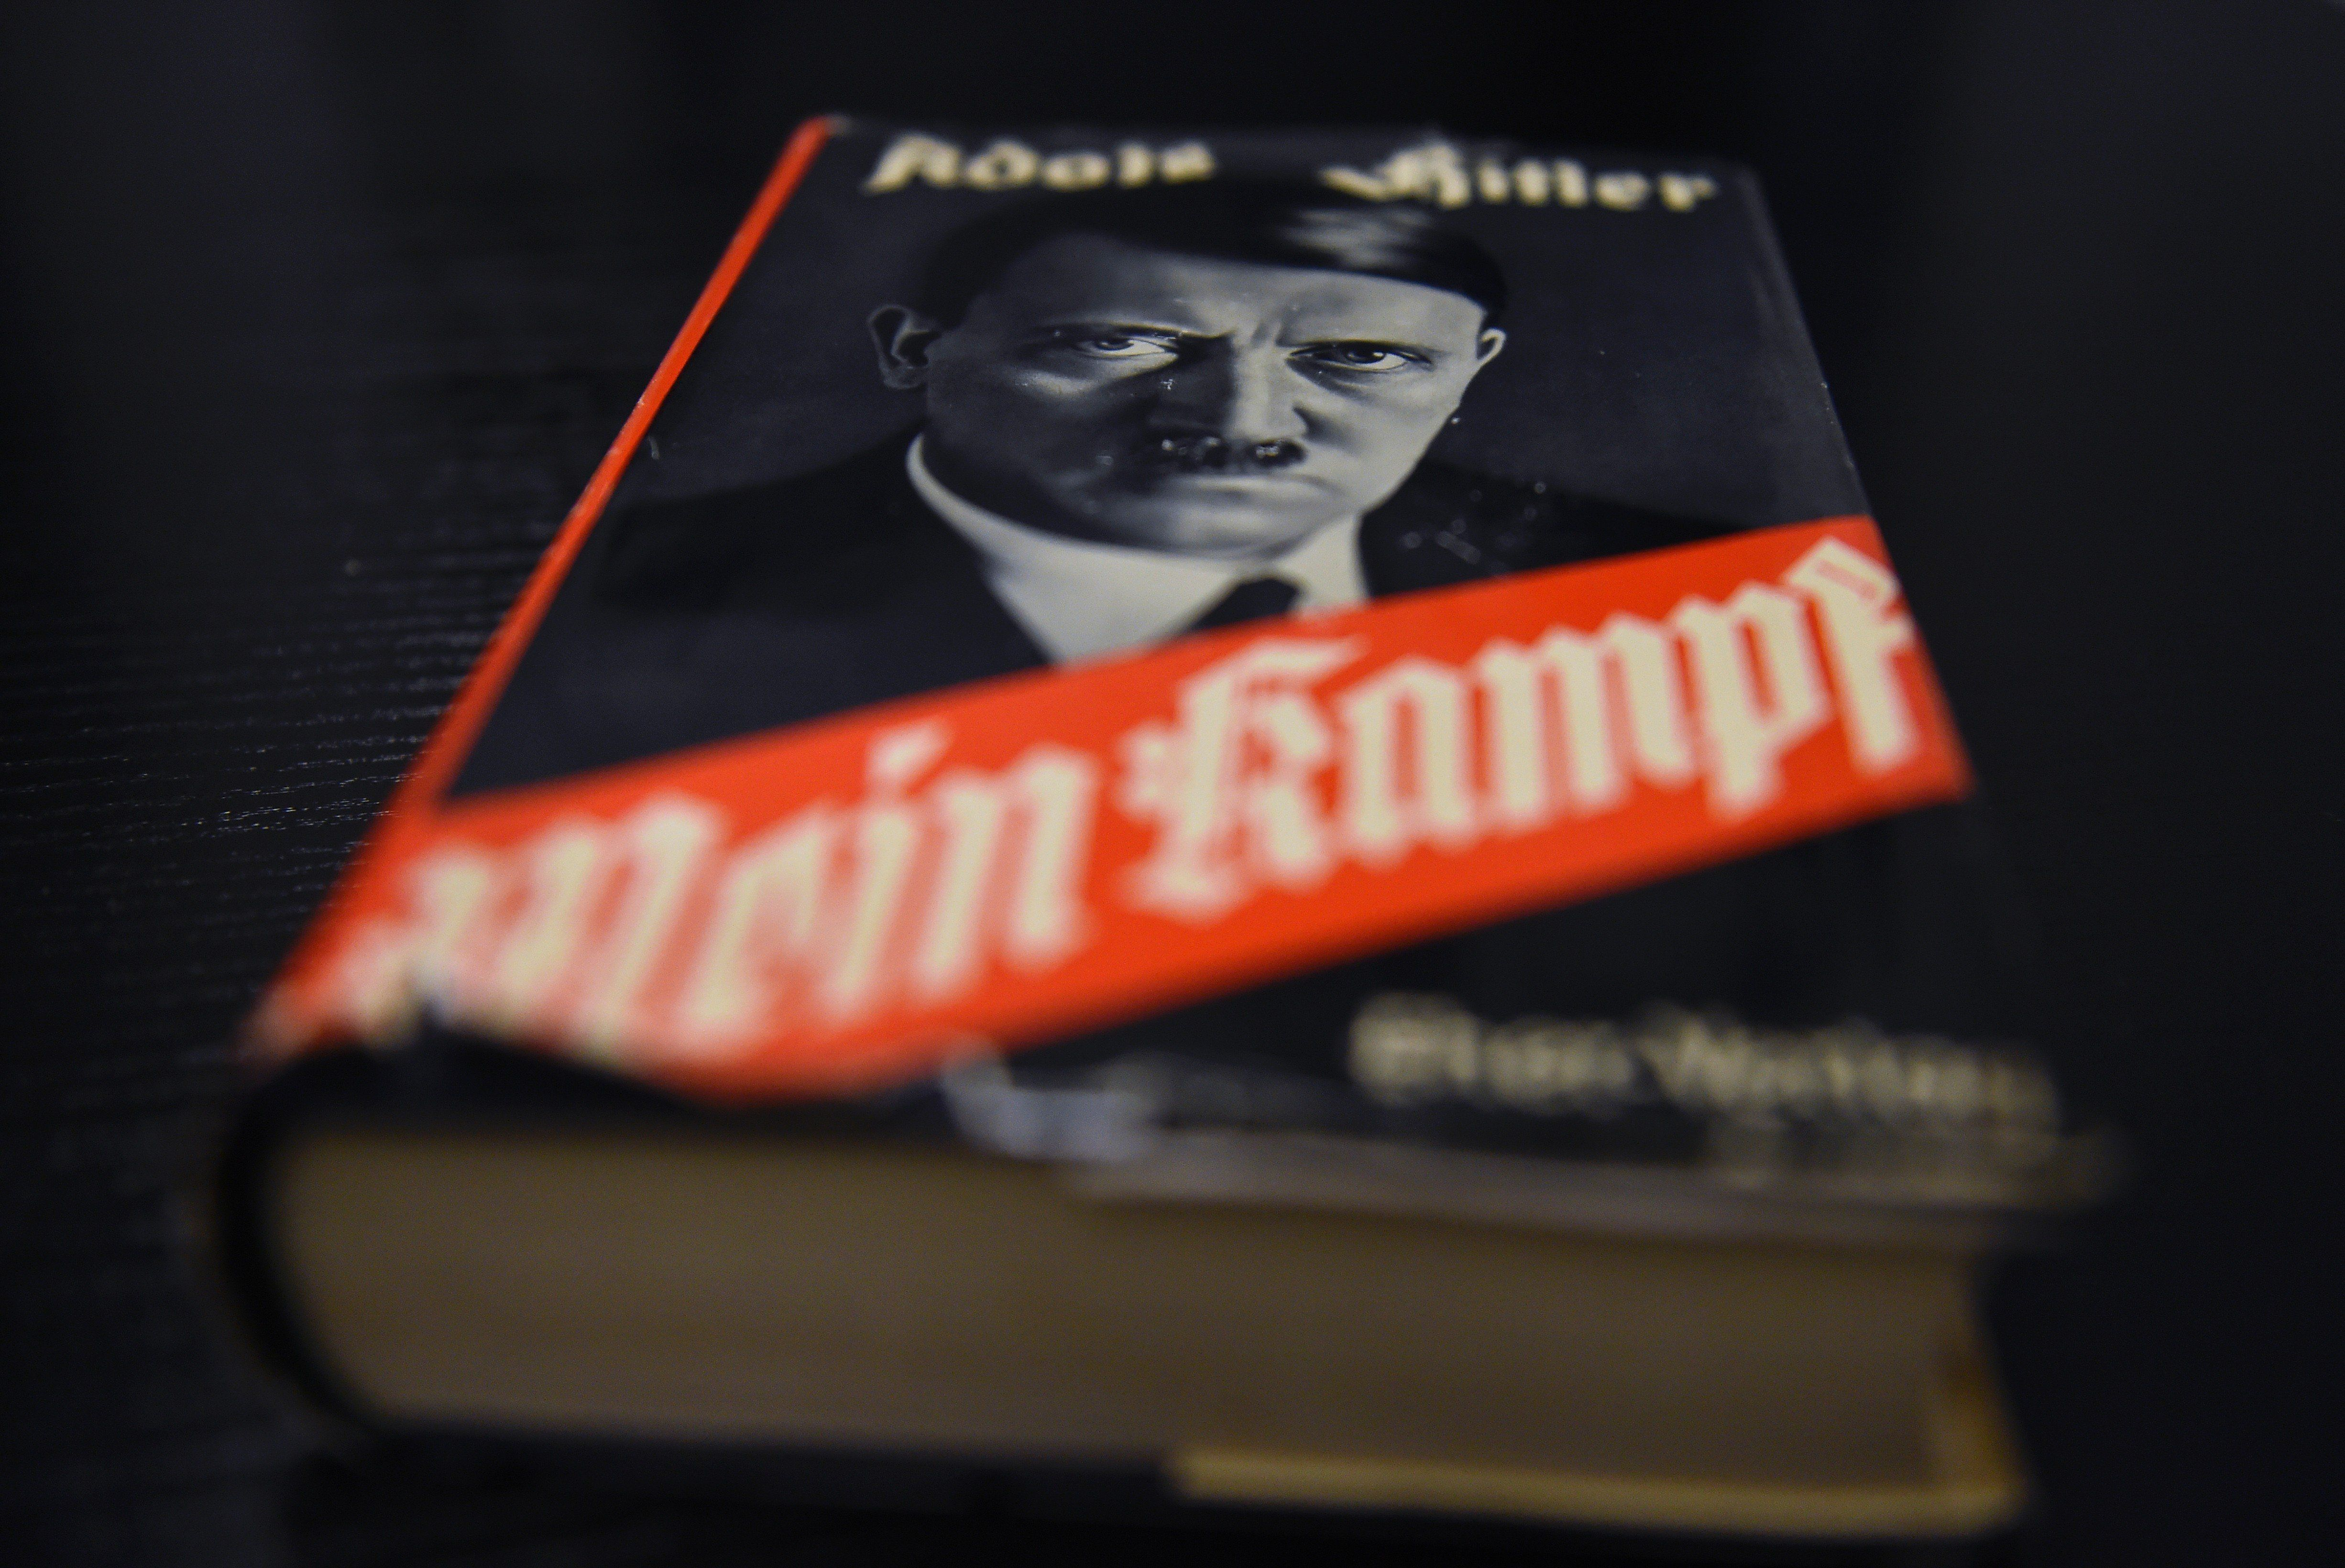 A German edition of Adolf Hitler's 'Mein Kampf' (My Struggle) is pictured at the Berlin Central and Regional Library (Zentrale Landesbibliothek, ZLB) in Berlin on December 7, 2015. For the first time since World War II, Adolf Hitler's 'Mein Kampf' will be printed in Germany in January 2016 as an annotated edition published by the Institute of Contemporary History (IFZ) in Munich.  AFP PHOTO / TOBIAS SCHWARZ / AFP / TOBIAS SCHWARZ        (Photo credit should read TOBIAS SCHWARZ/AFP/Getty Images)